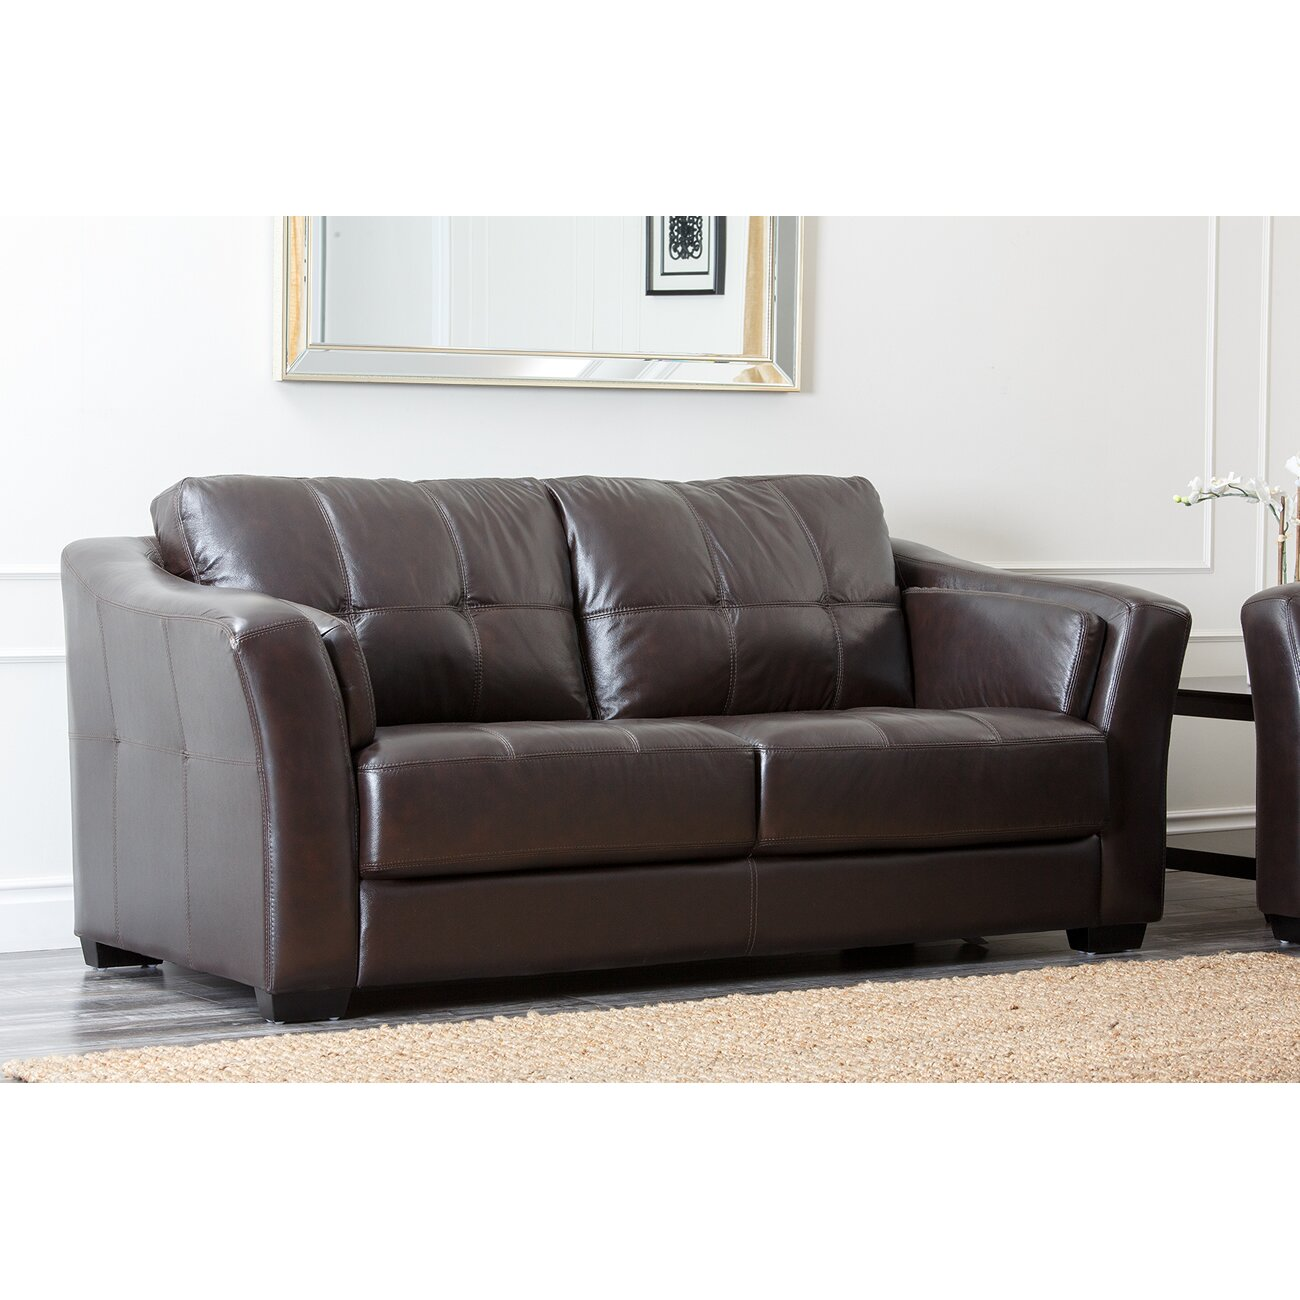 Sydney premium leather sofa wayfair Living room furniture sydney